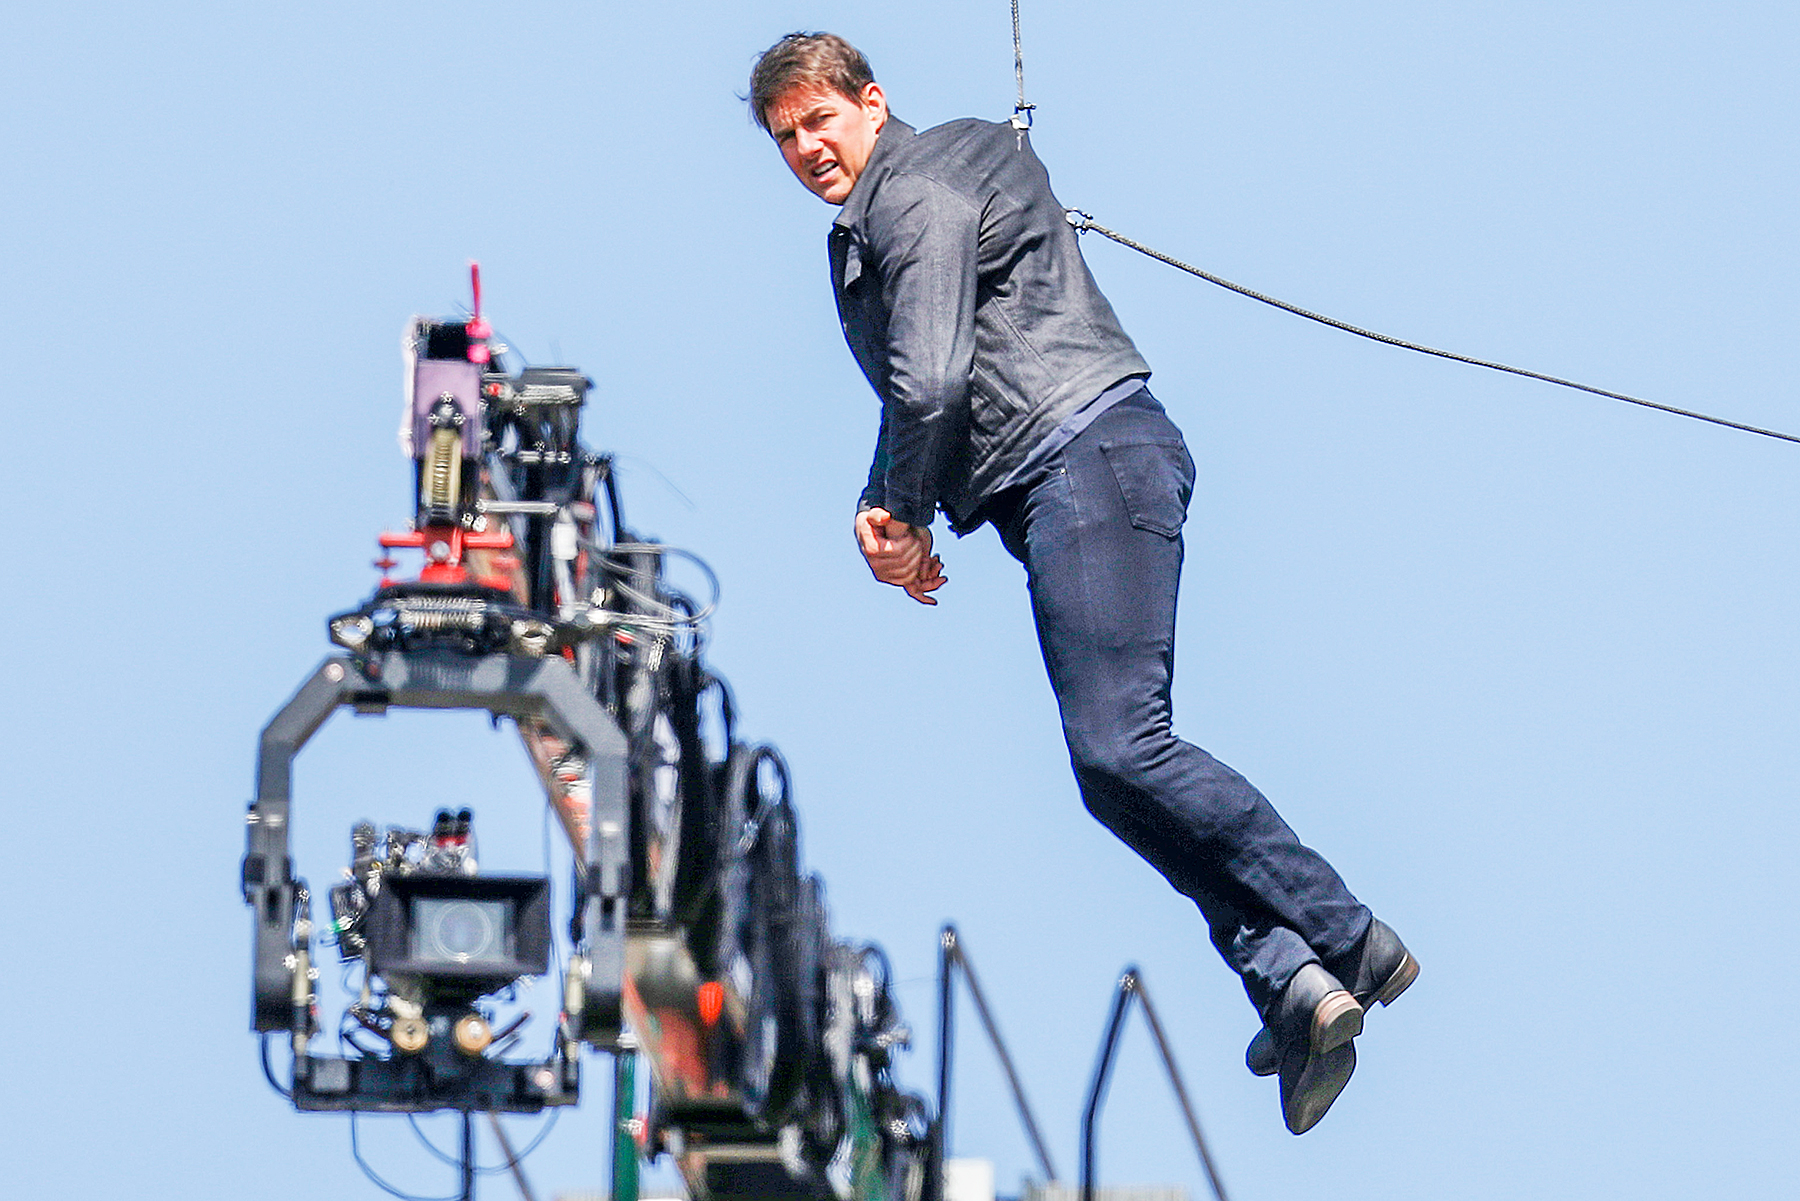 Tom Cruise Mission Impossible 6 Stunt injury